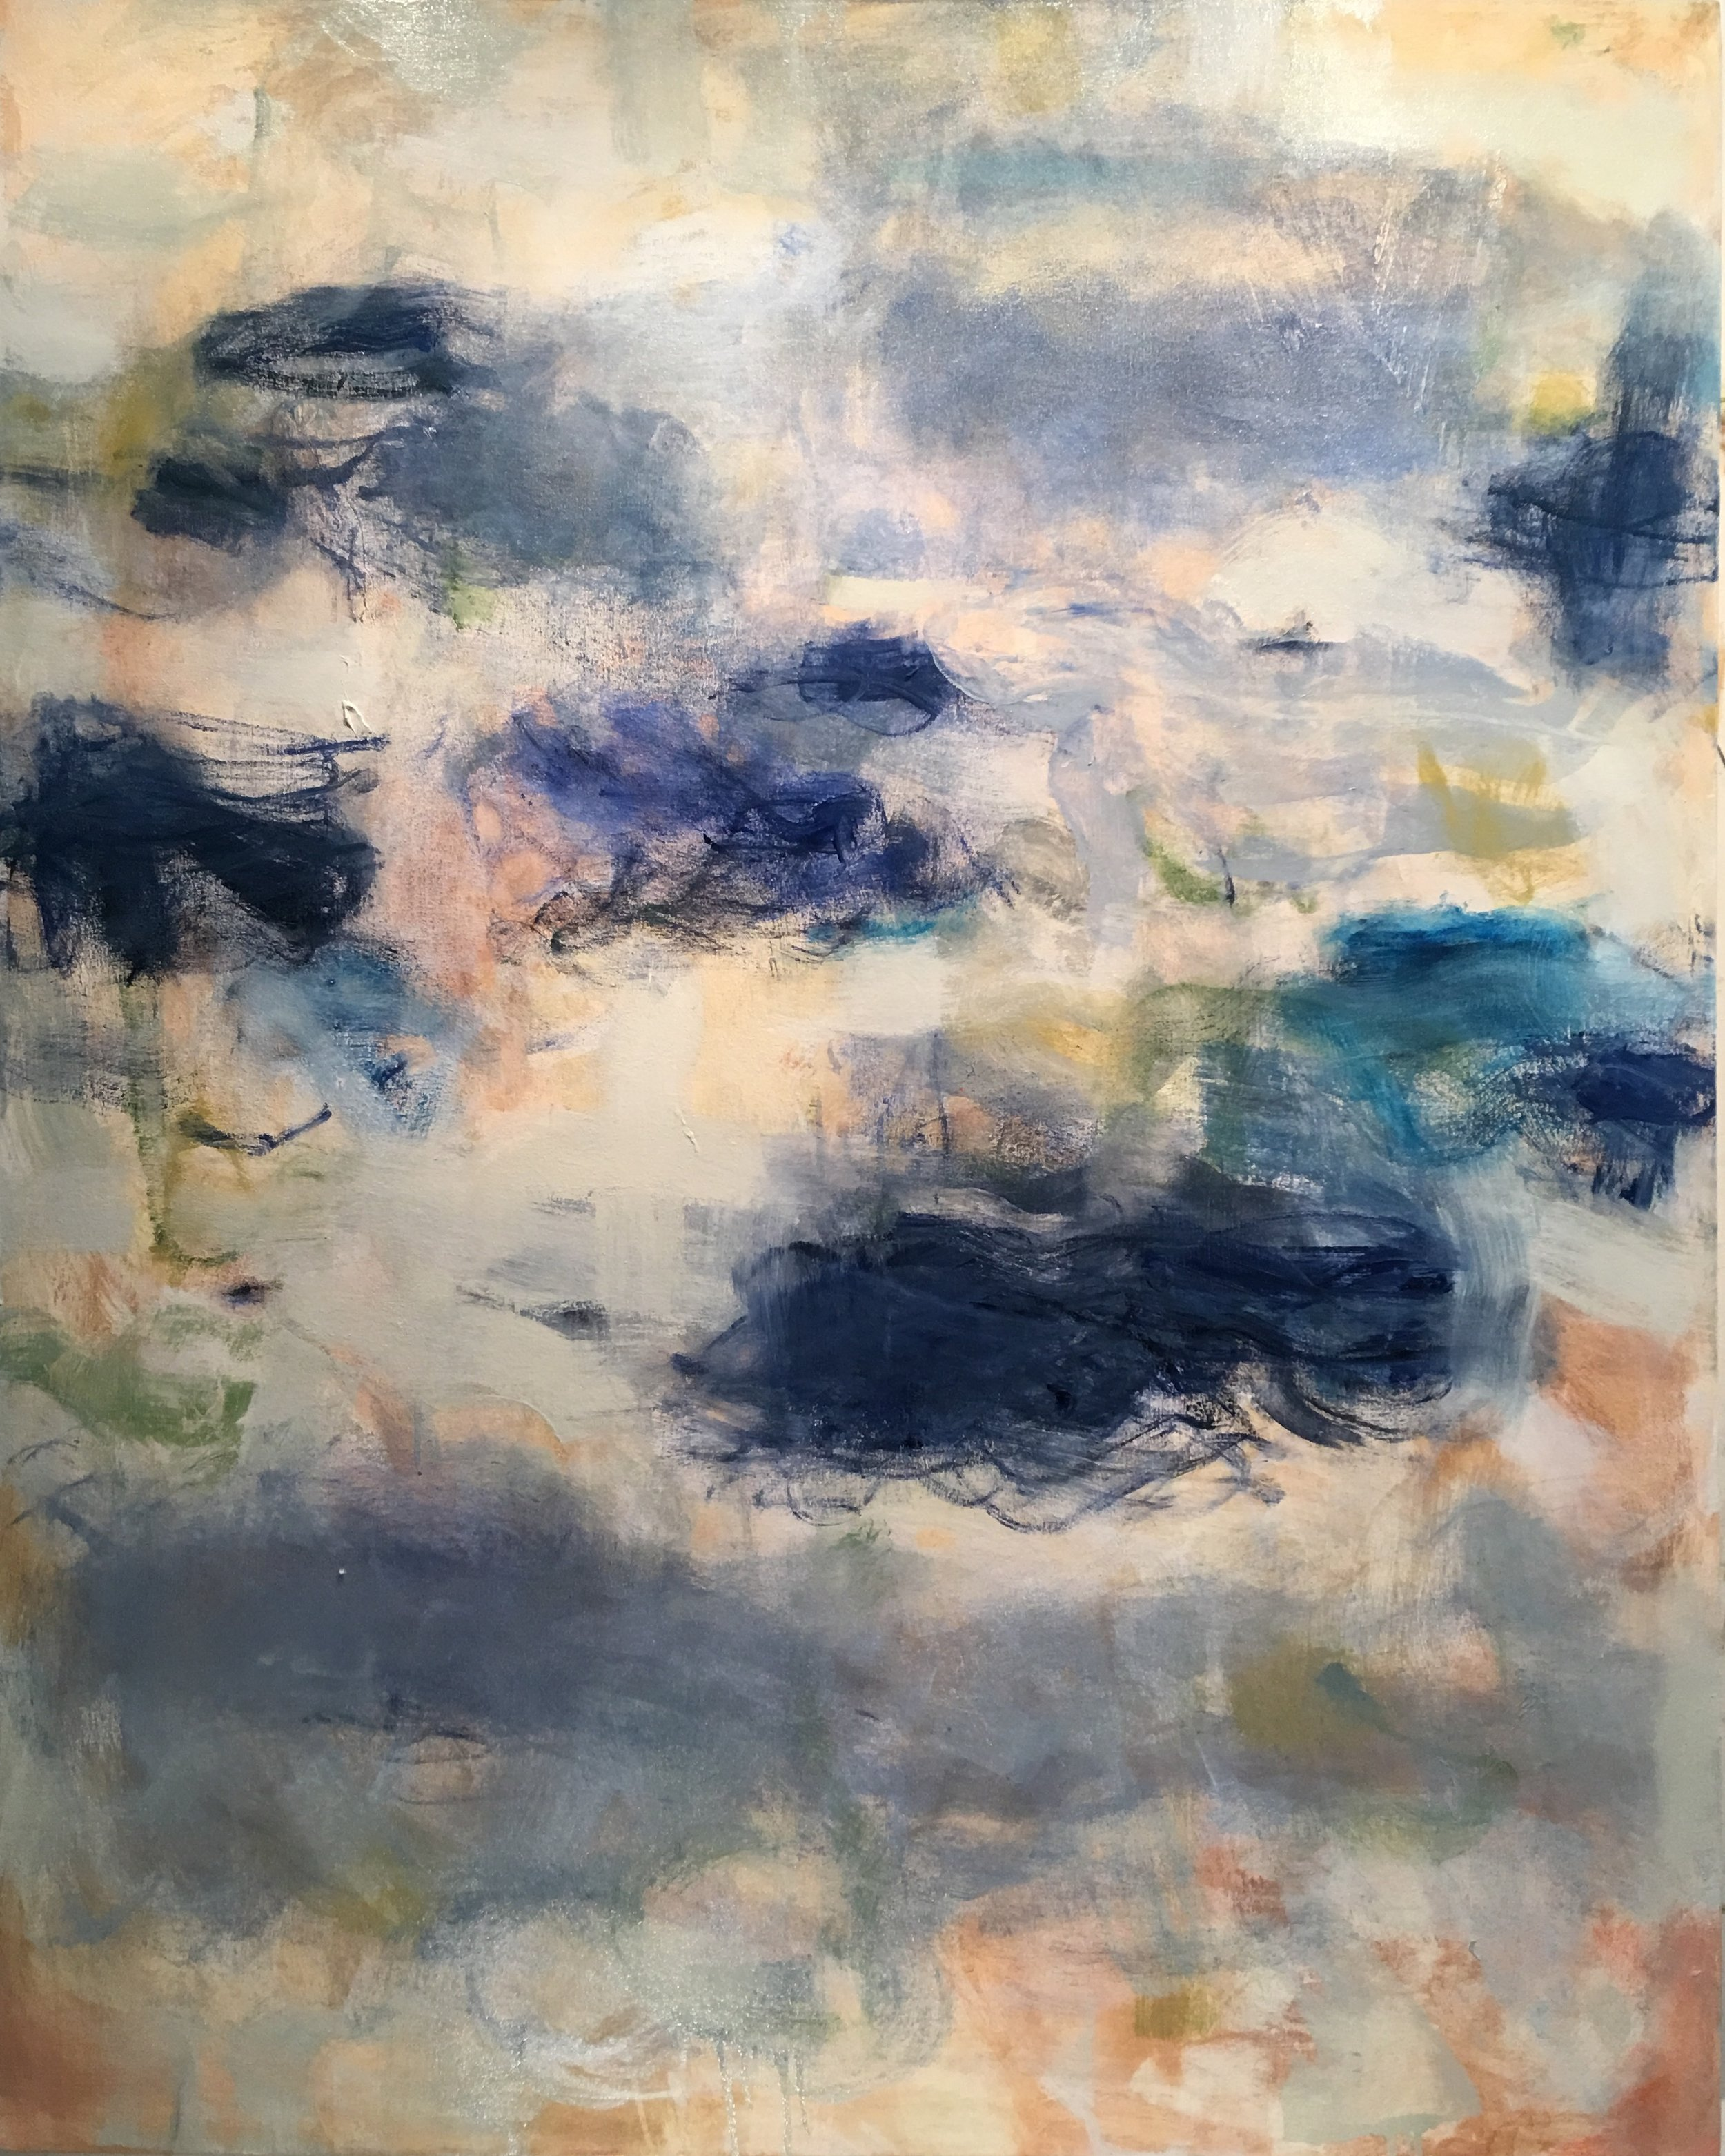 Cobalt Sky, oil on canvas, 60 x 48 inches, $9400